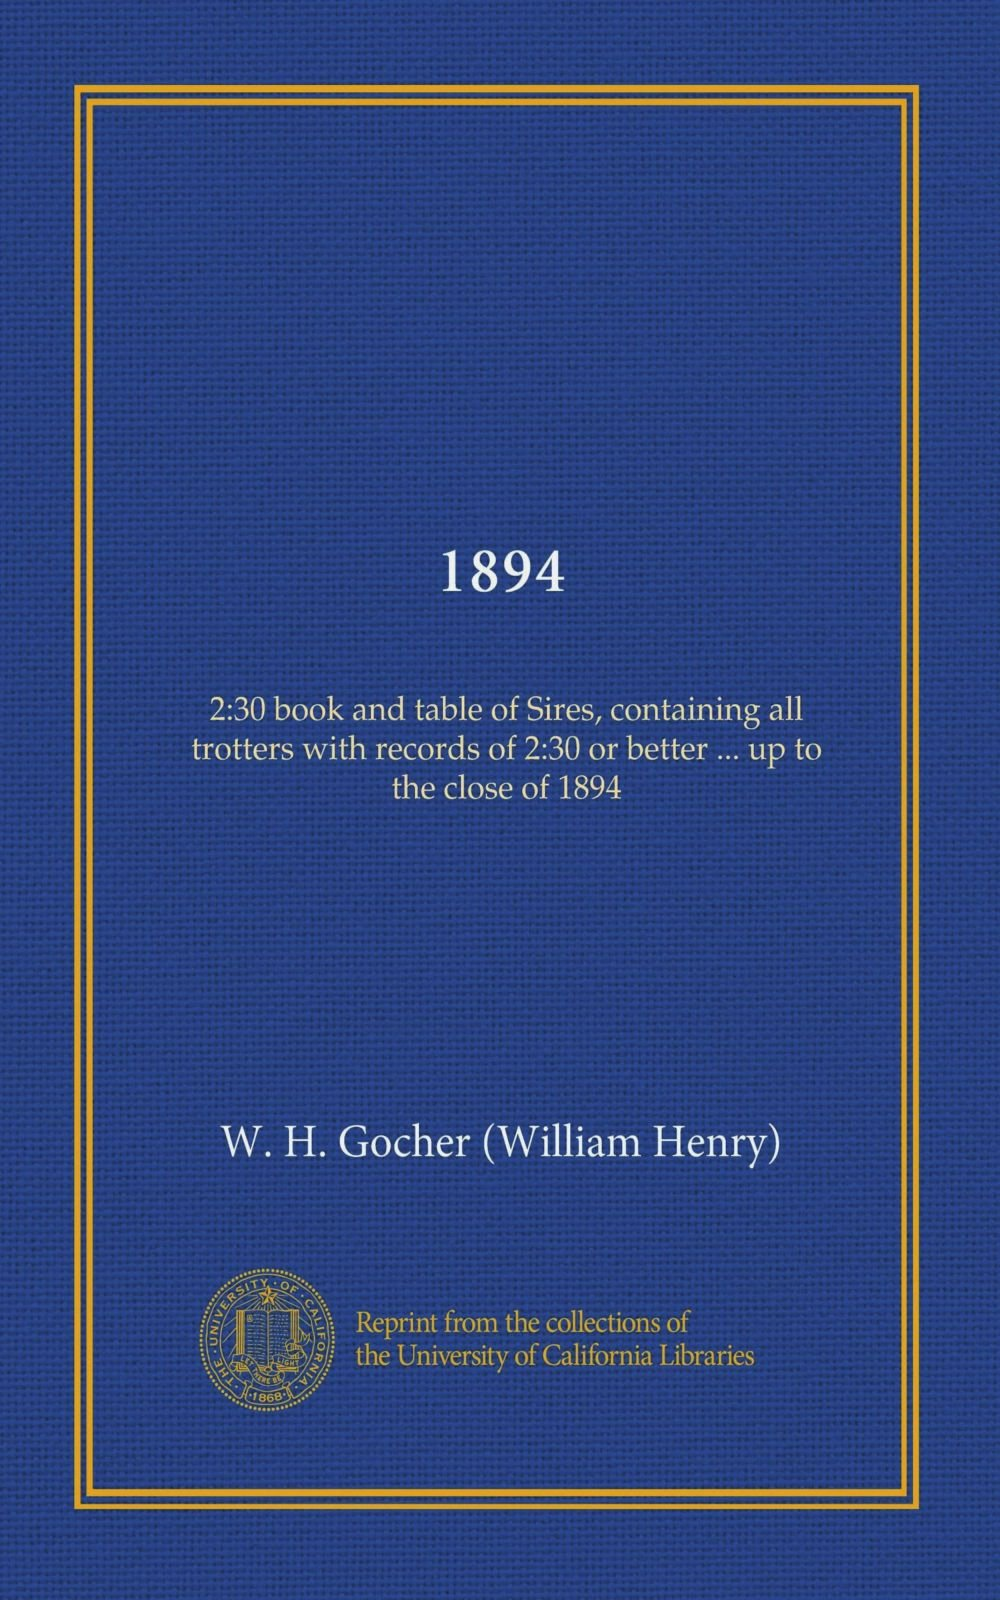 1894 (Vol-1): 2:30 book and table of Sires, containing all trotters with records of 2:30 or better ... up to the close of 1894 PDF